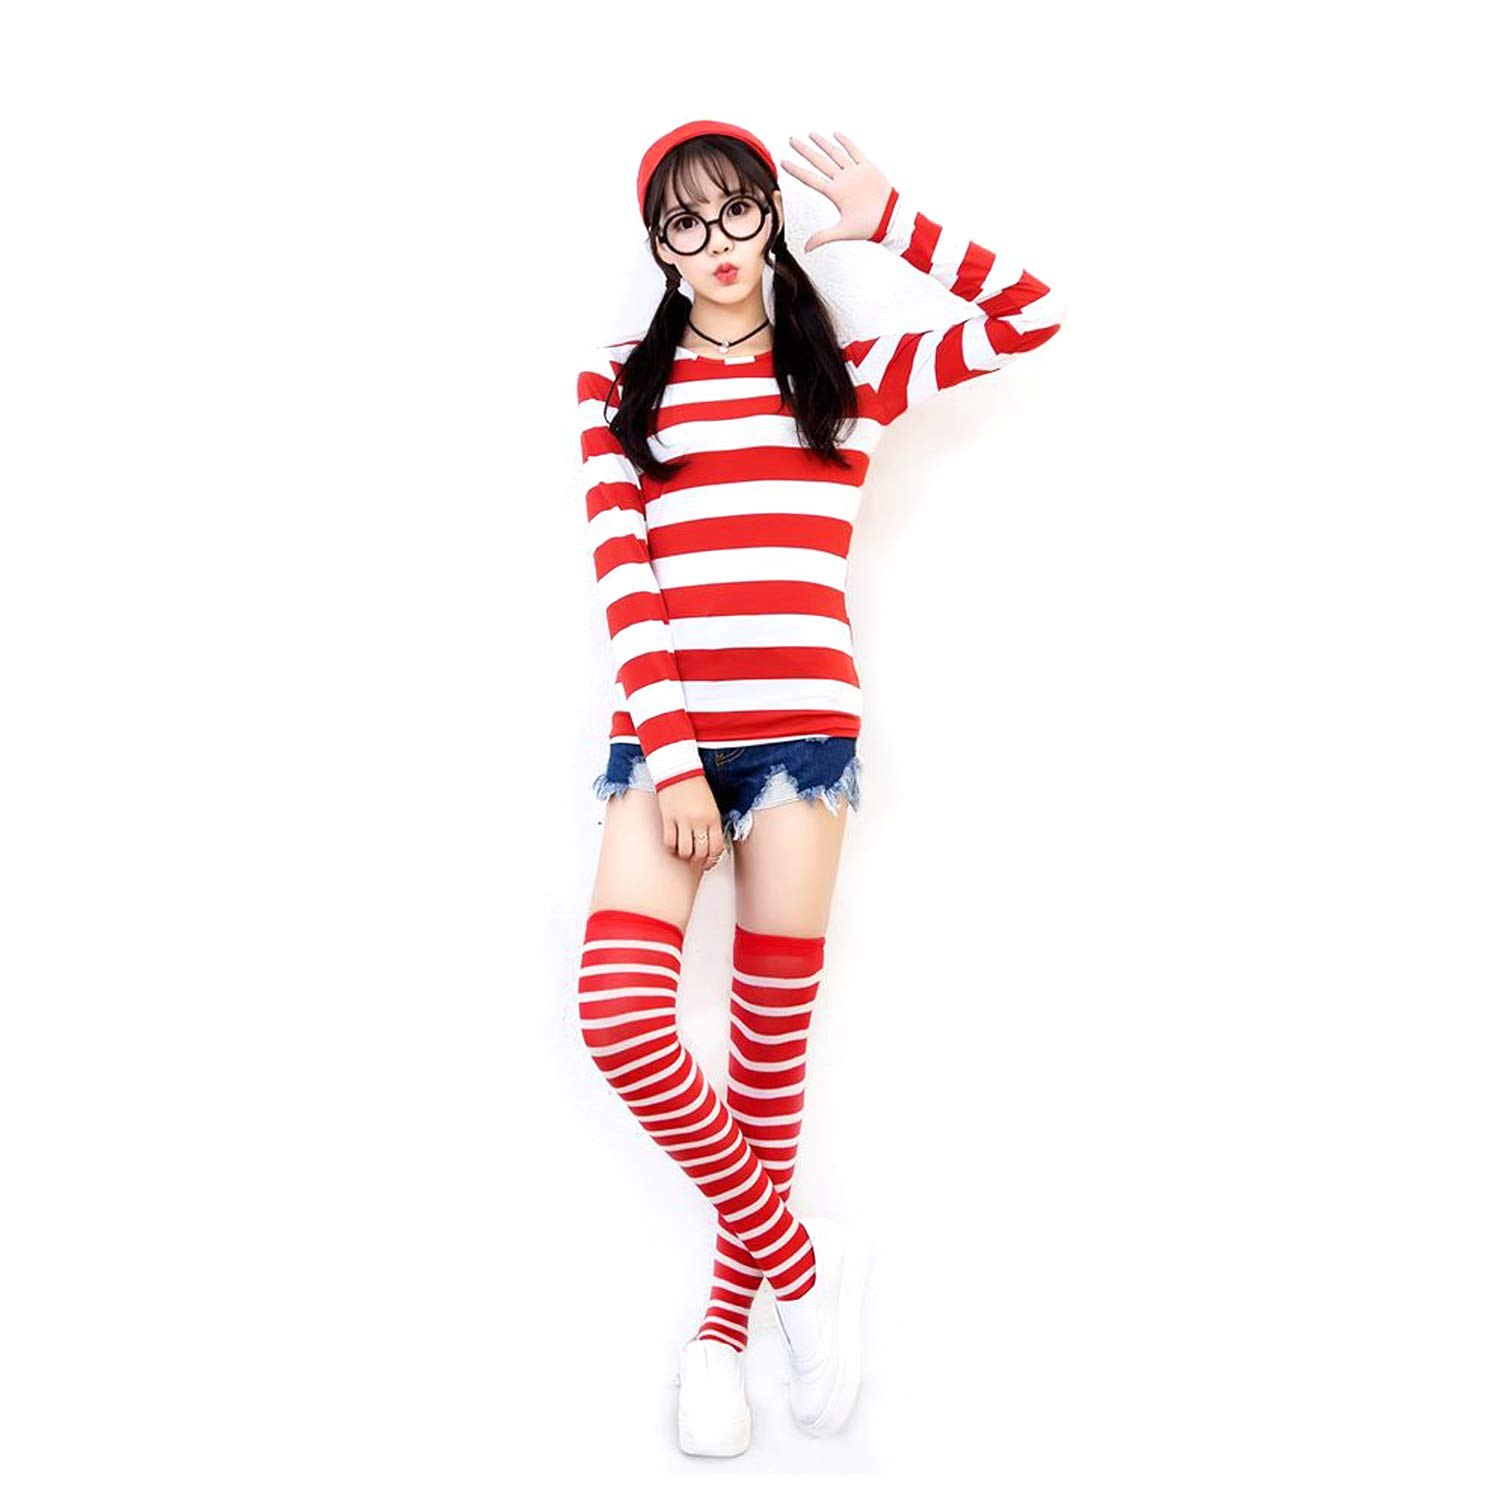 GMIOWEU Halloween Cosplay Costumes, Shirt Costume, Adult Funny Sweatshirt, Hoodie Outfit Glasses Hat Shirt Suits